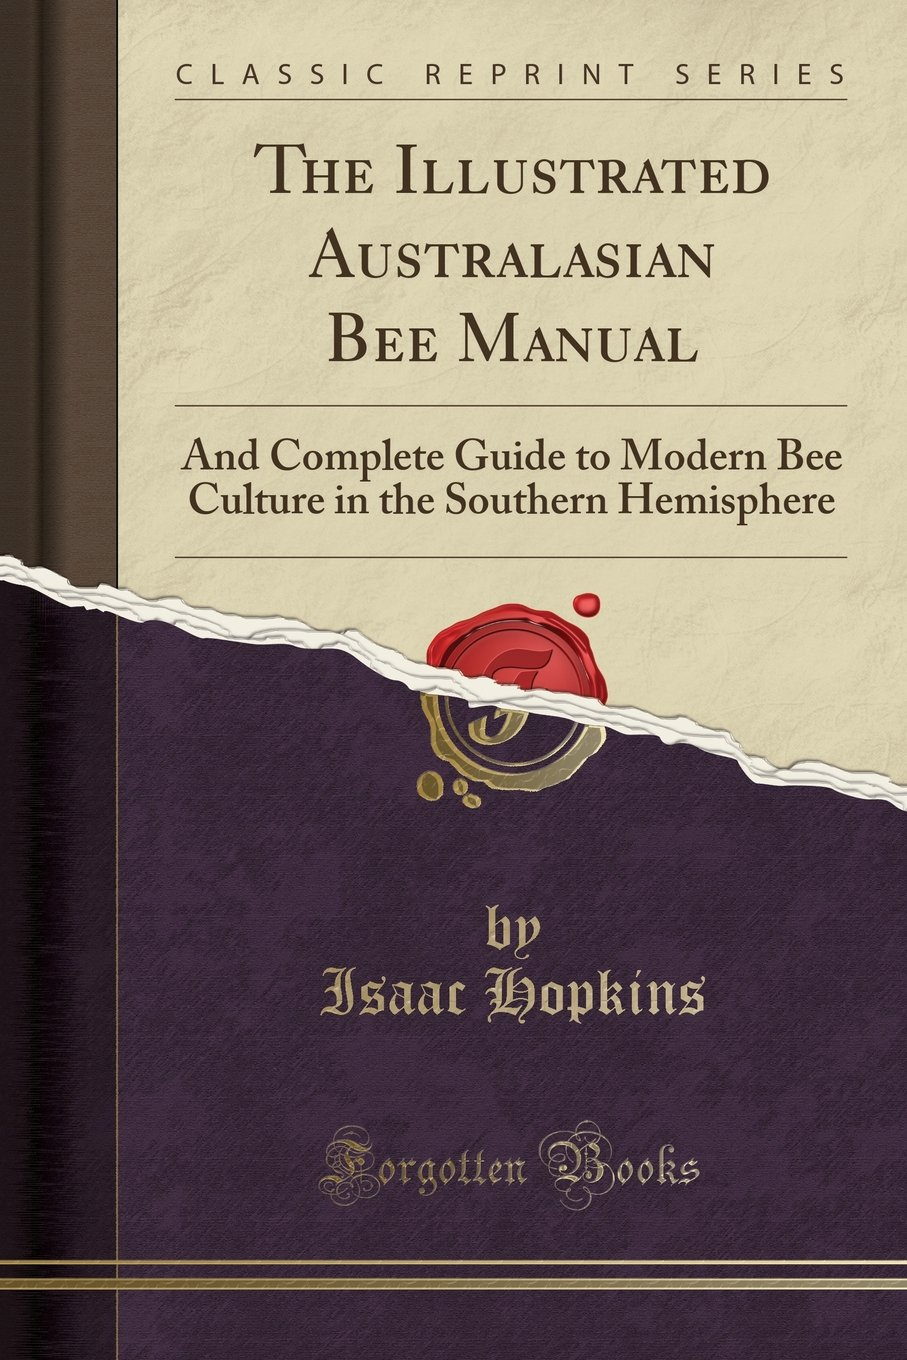 The Illustrated Australasian Bee Manual: And Complete Guide to Modern Bee Culture in the Southern Hemisphere (Classic Reprint)